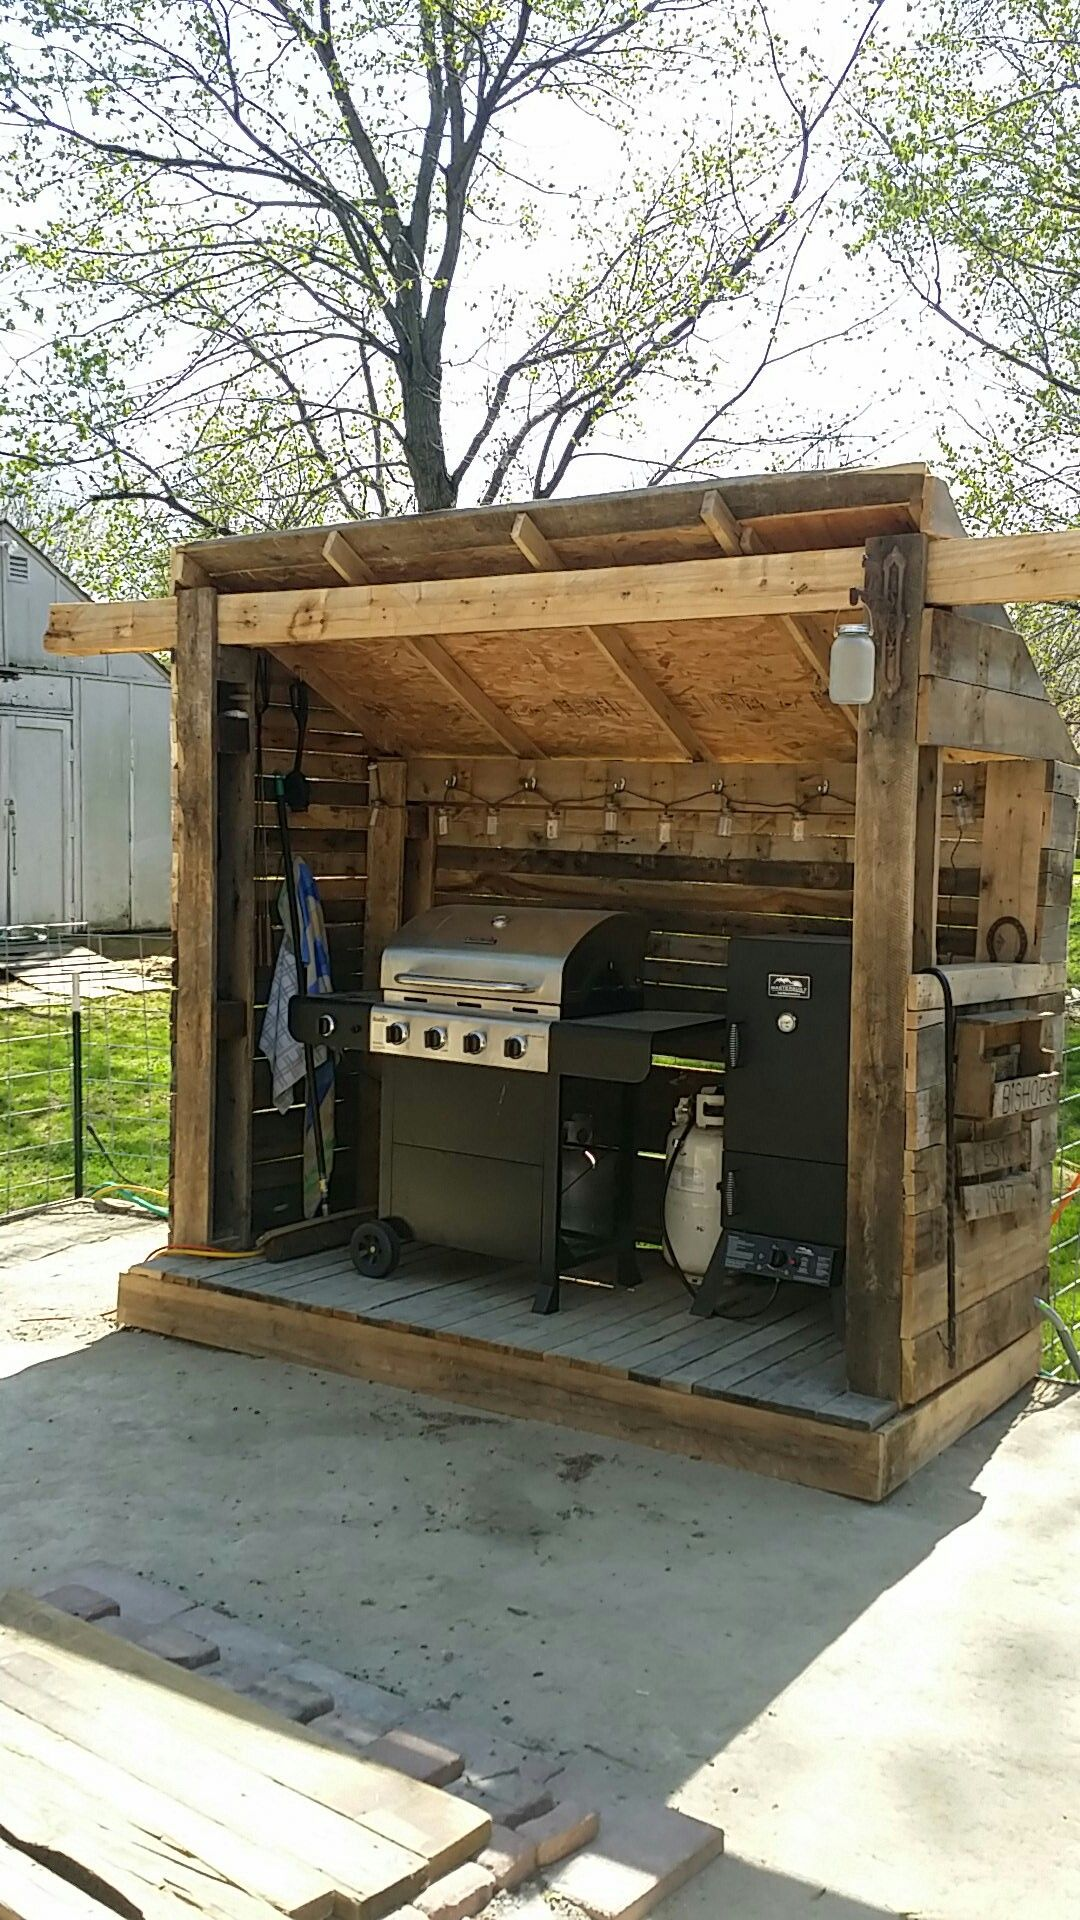 Bbq Hut Outdoor Ideas In 2019 Bbq Hut Outdoor Cooking